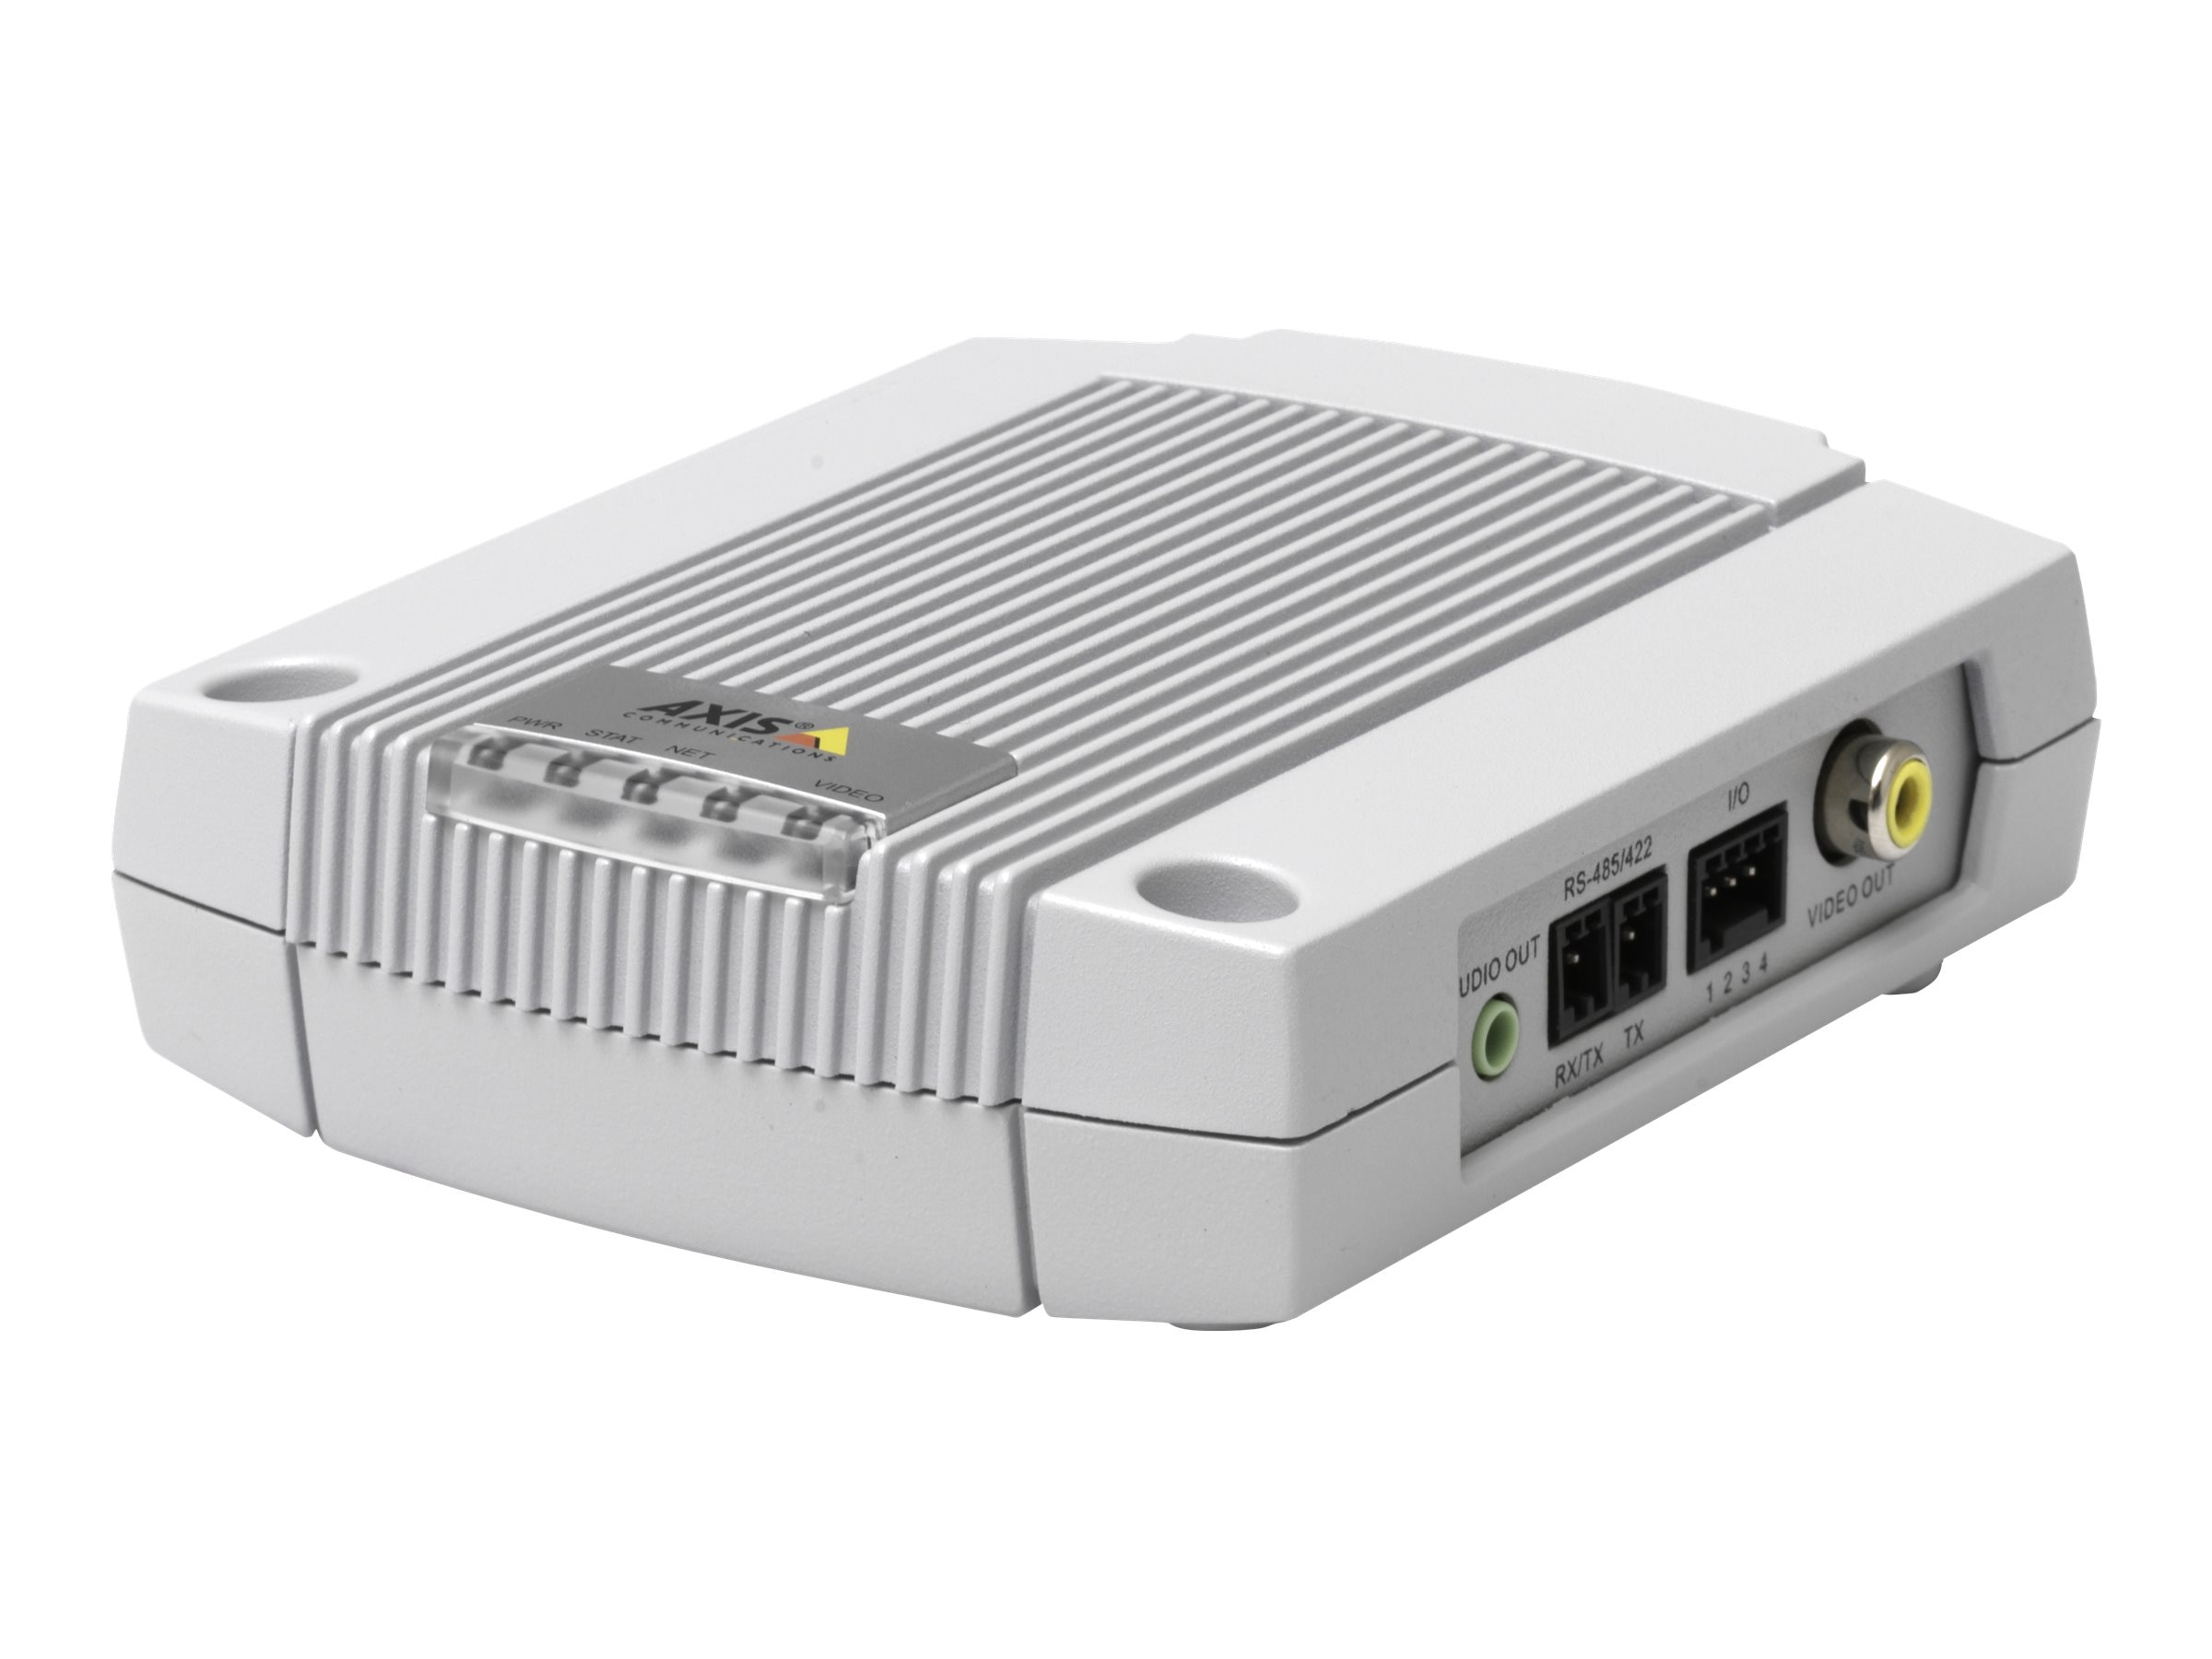 Axis P7701 1-Port Video Encoder